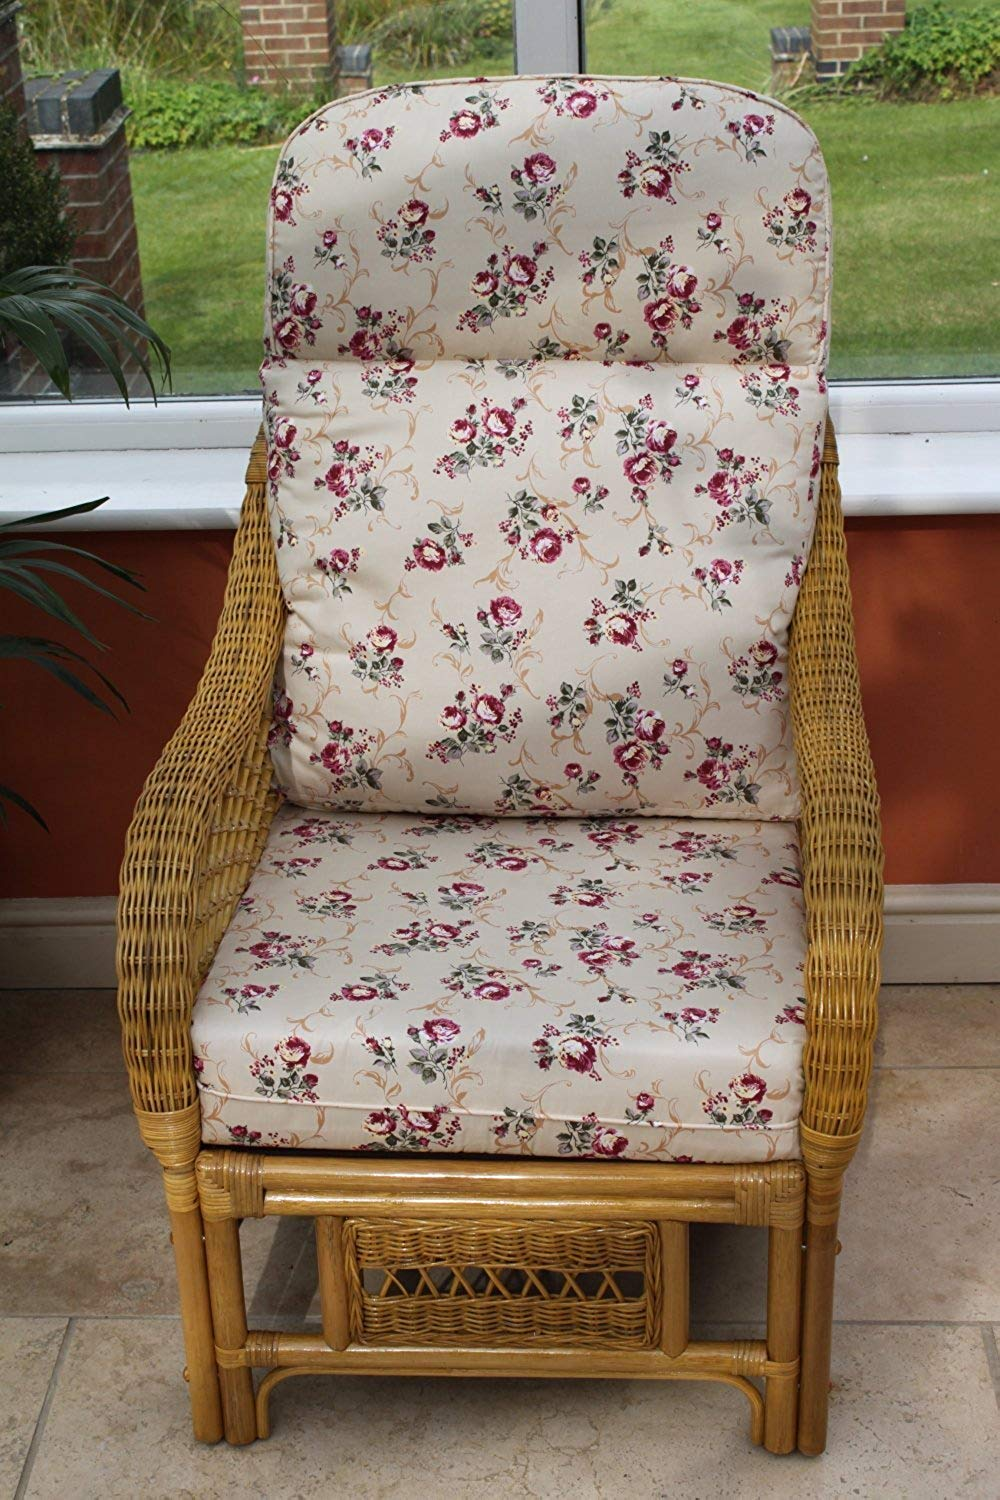 IRA Hand Weaved Chair for Living Room and Balcony - IRA Furniture